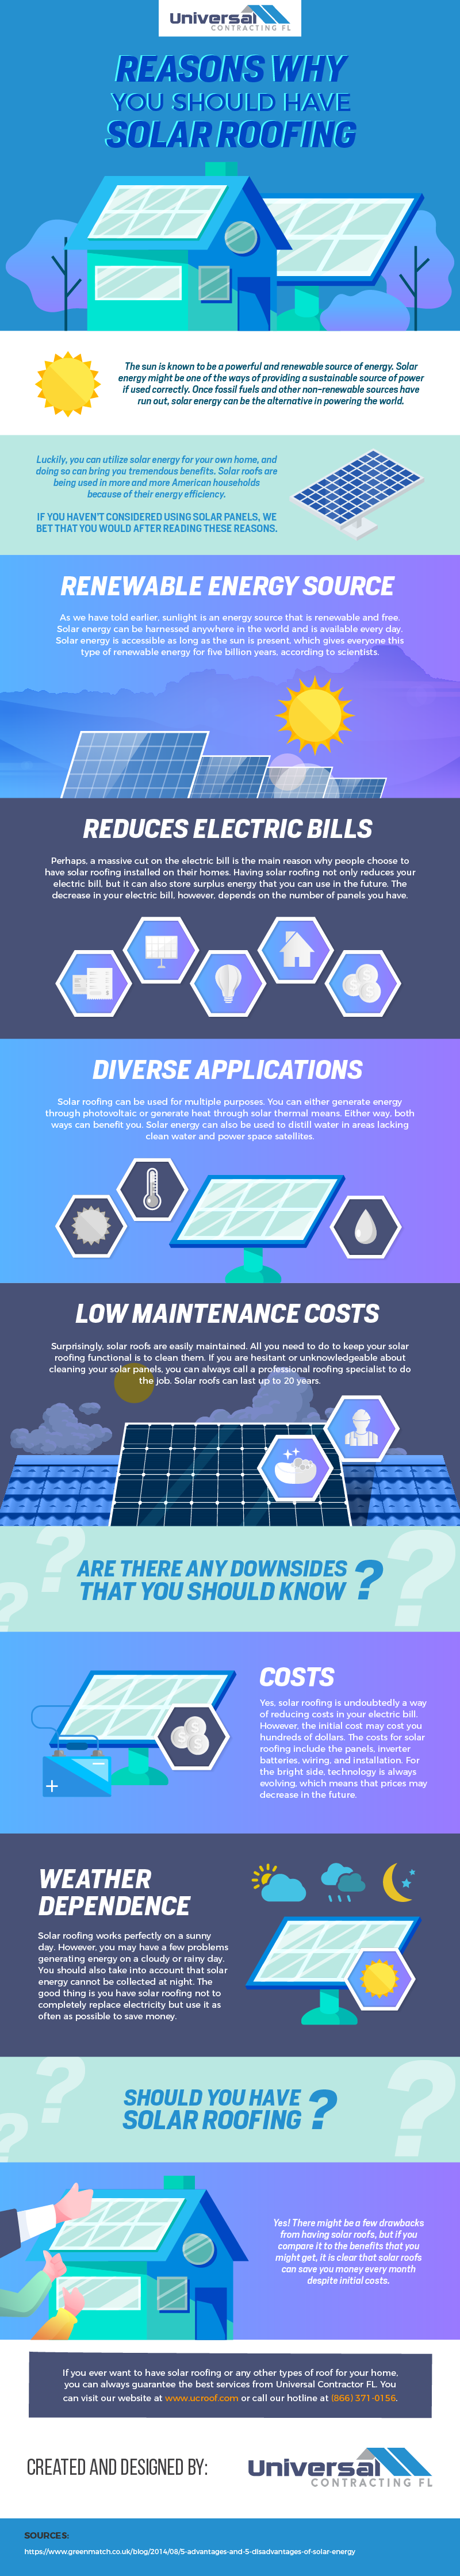 Reasons-why-you-should-have-solar-roofing-Infographic